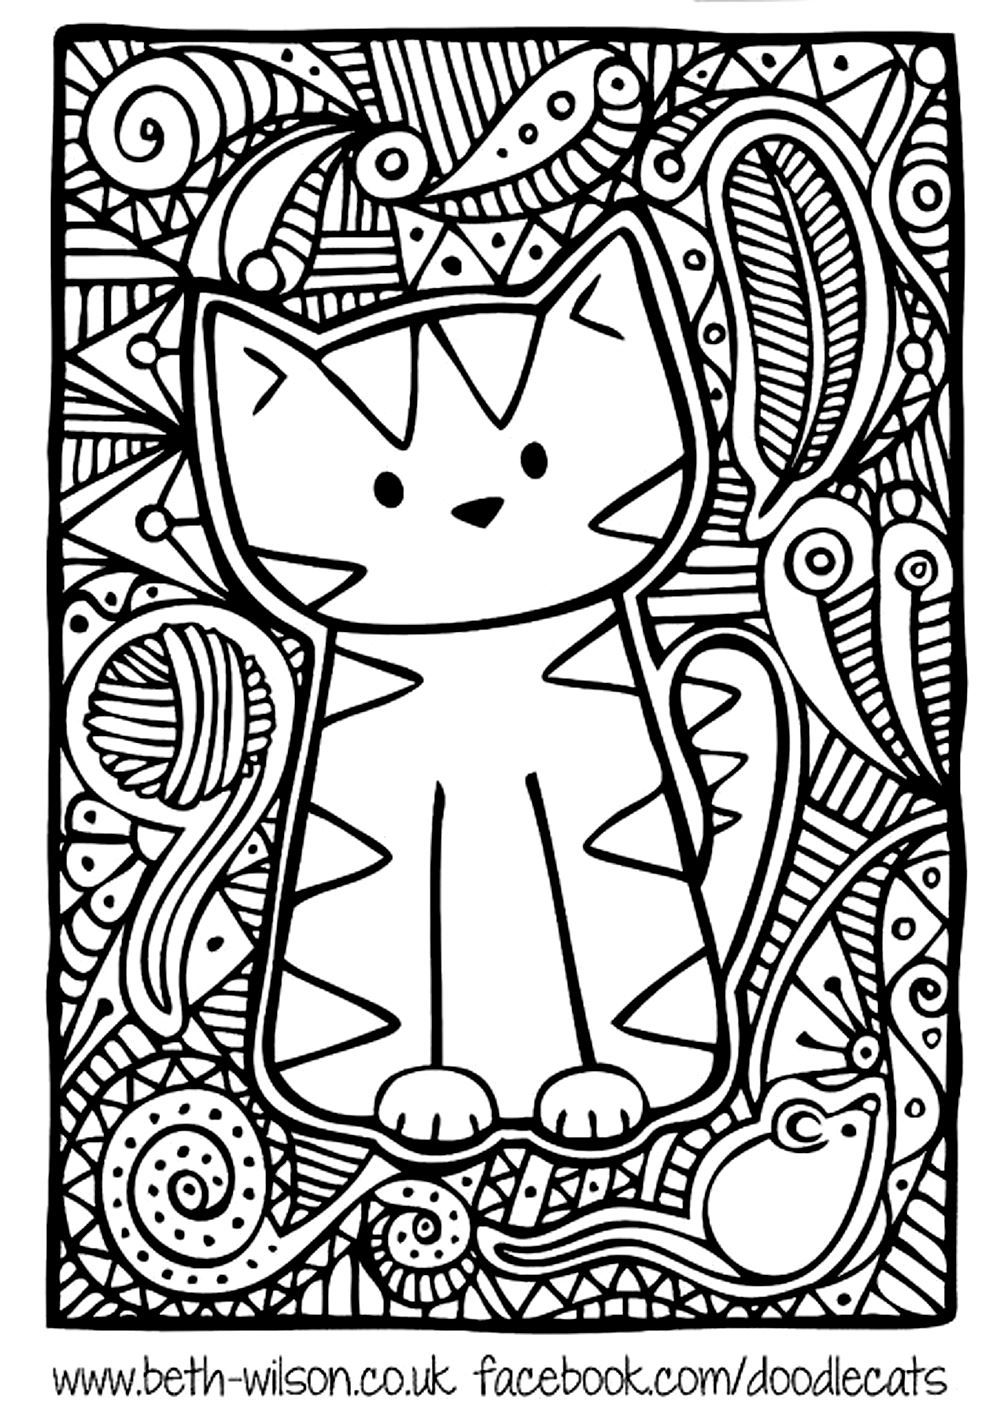 Galerie de coloriages gratuits coloriage adulte difficile - Coloriages a colorier ...